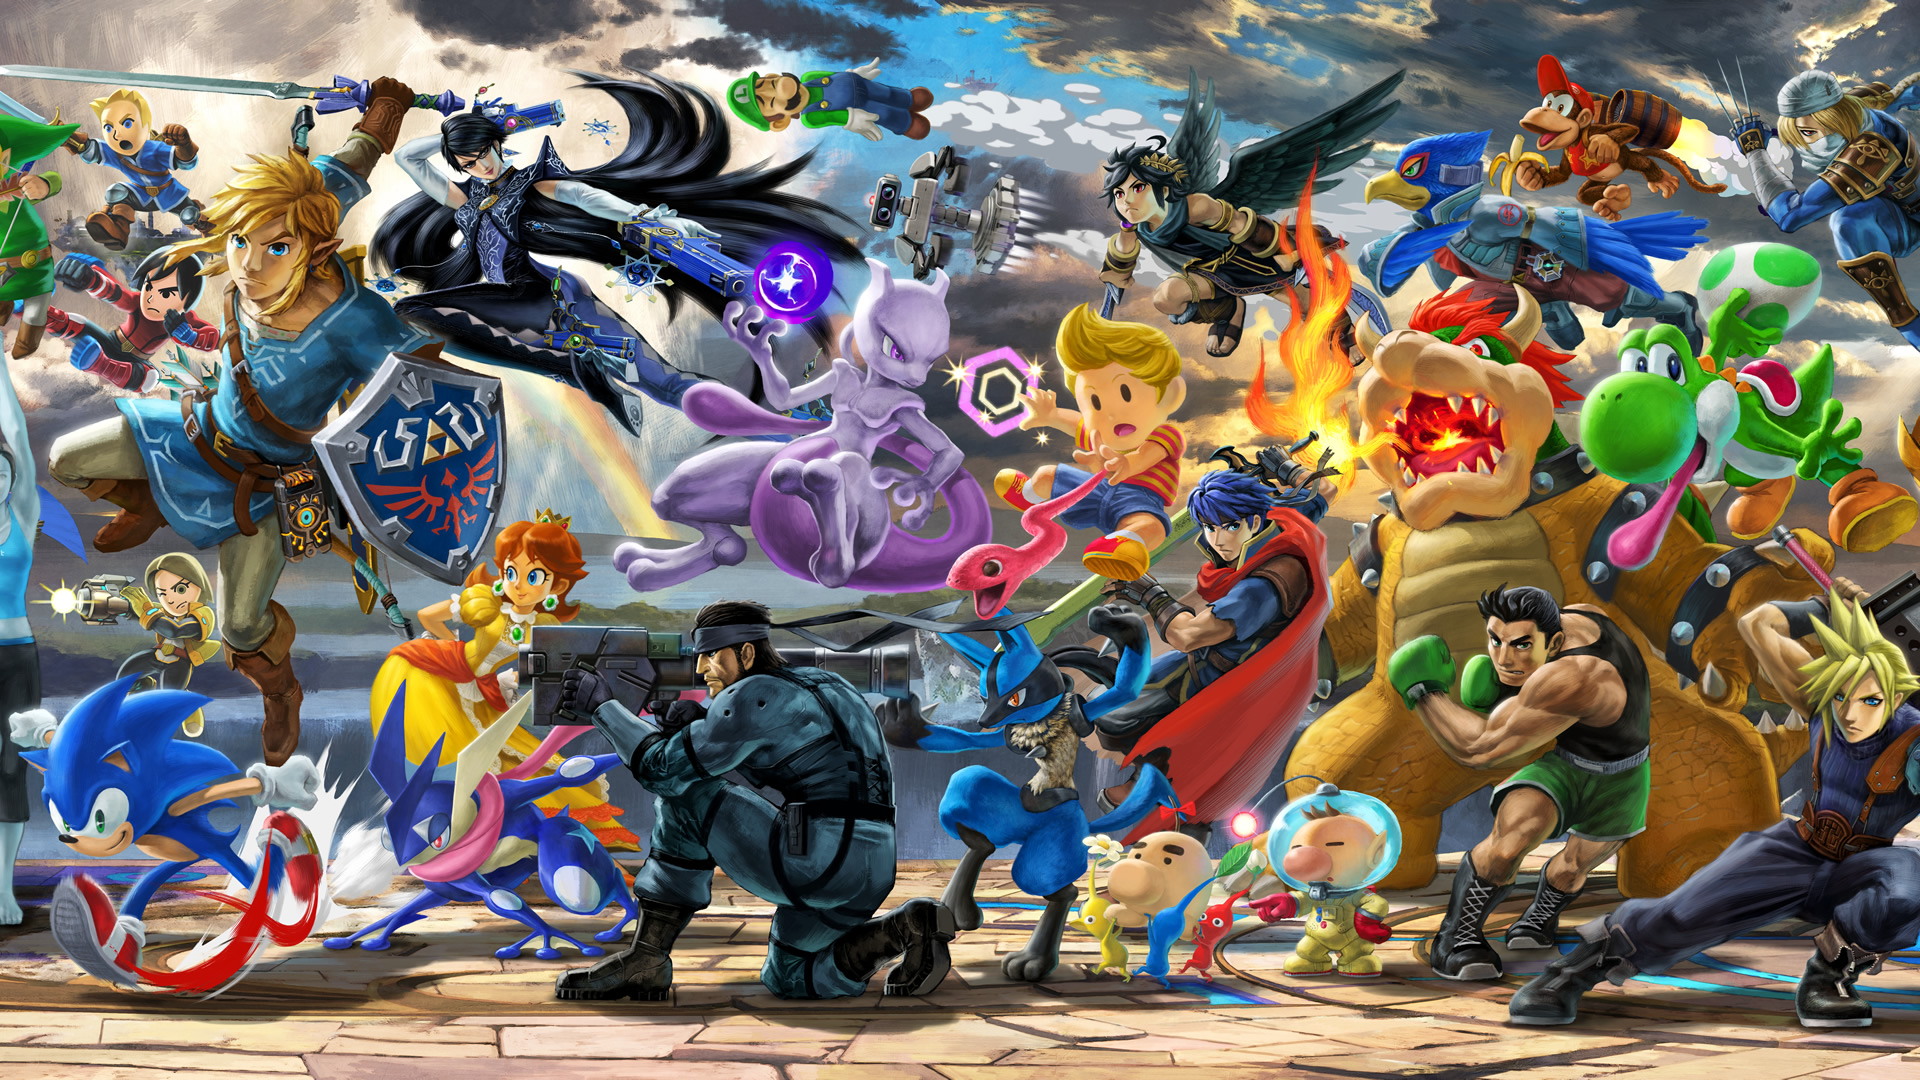 Smash Bros. Ultimate – One Amazing Year of DLC, Records & More